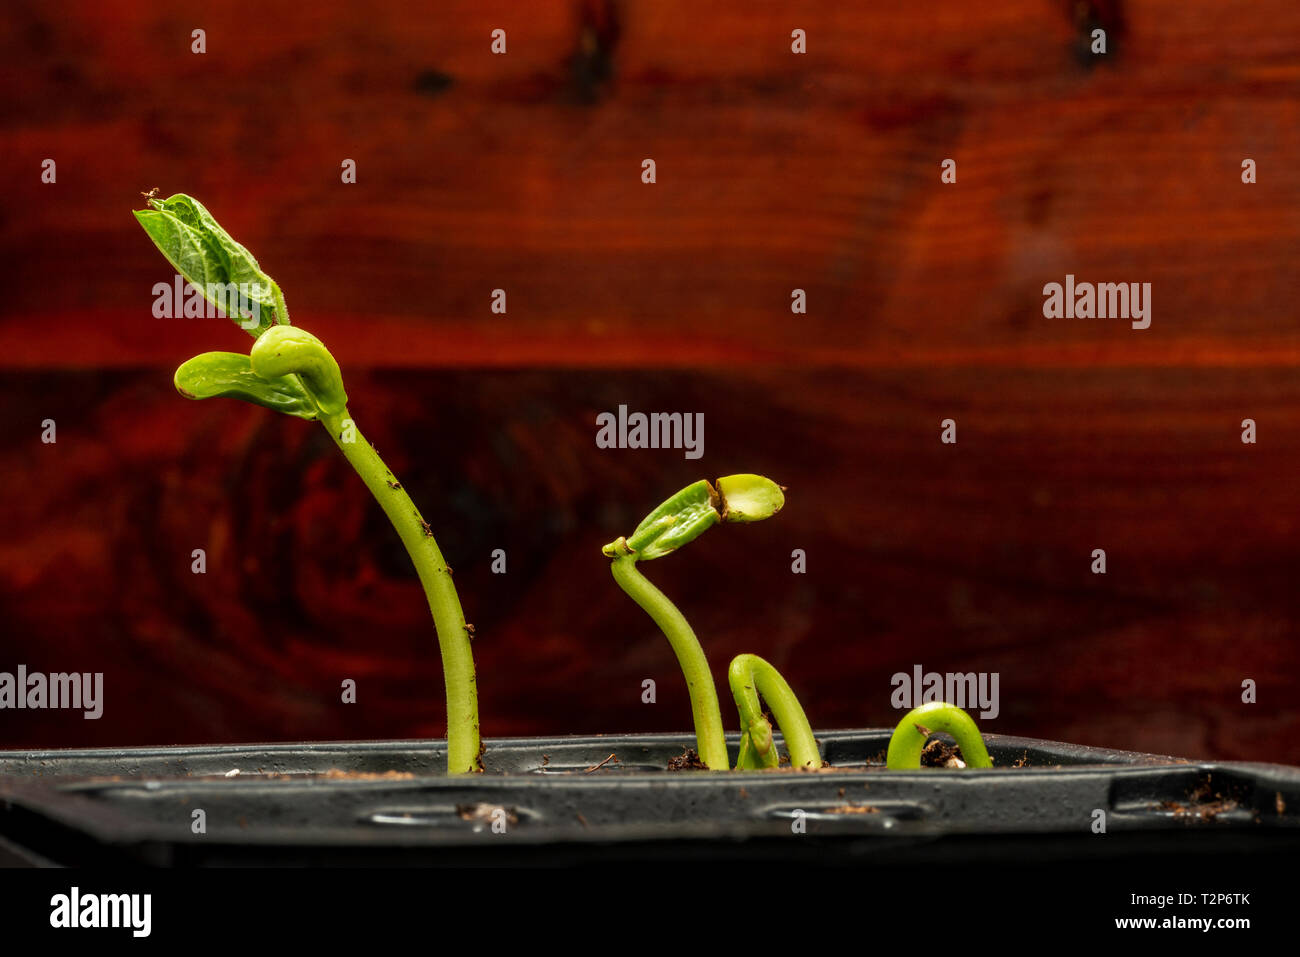 Horizontal shot of some fresh bean sprouts in a plastic tray with copy space. - Stock Image